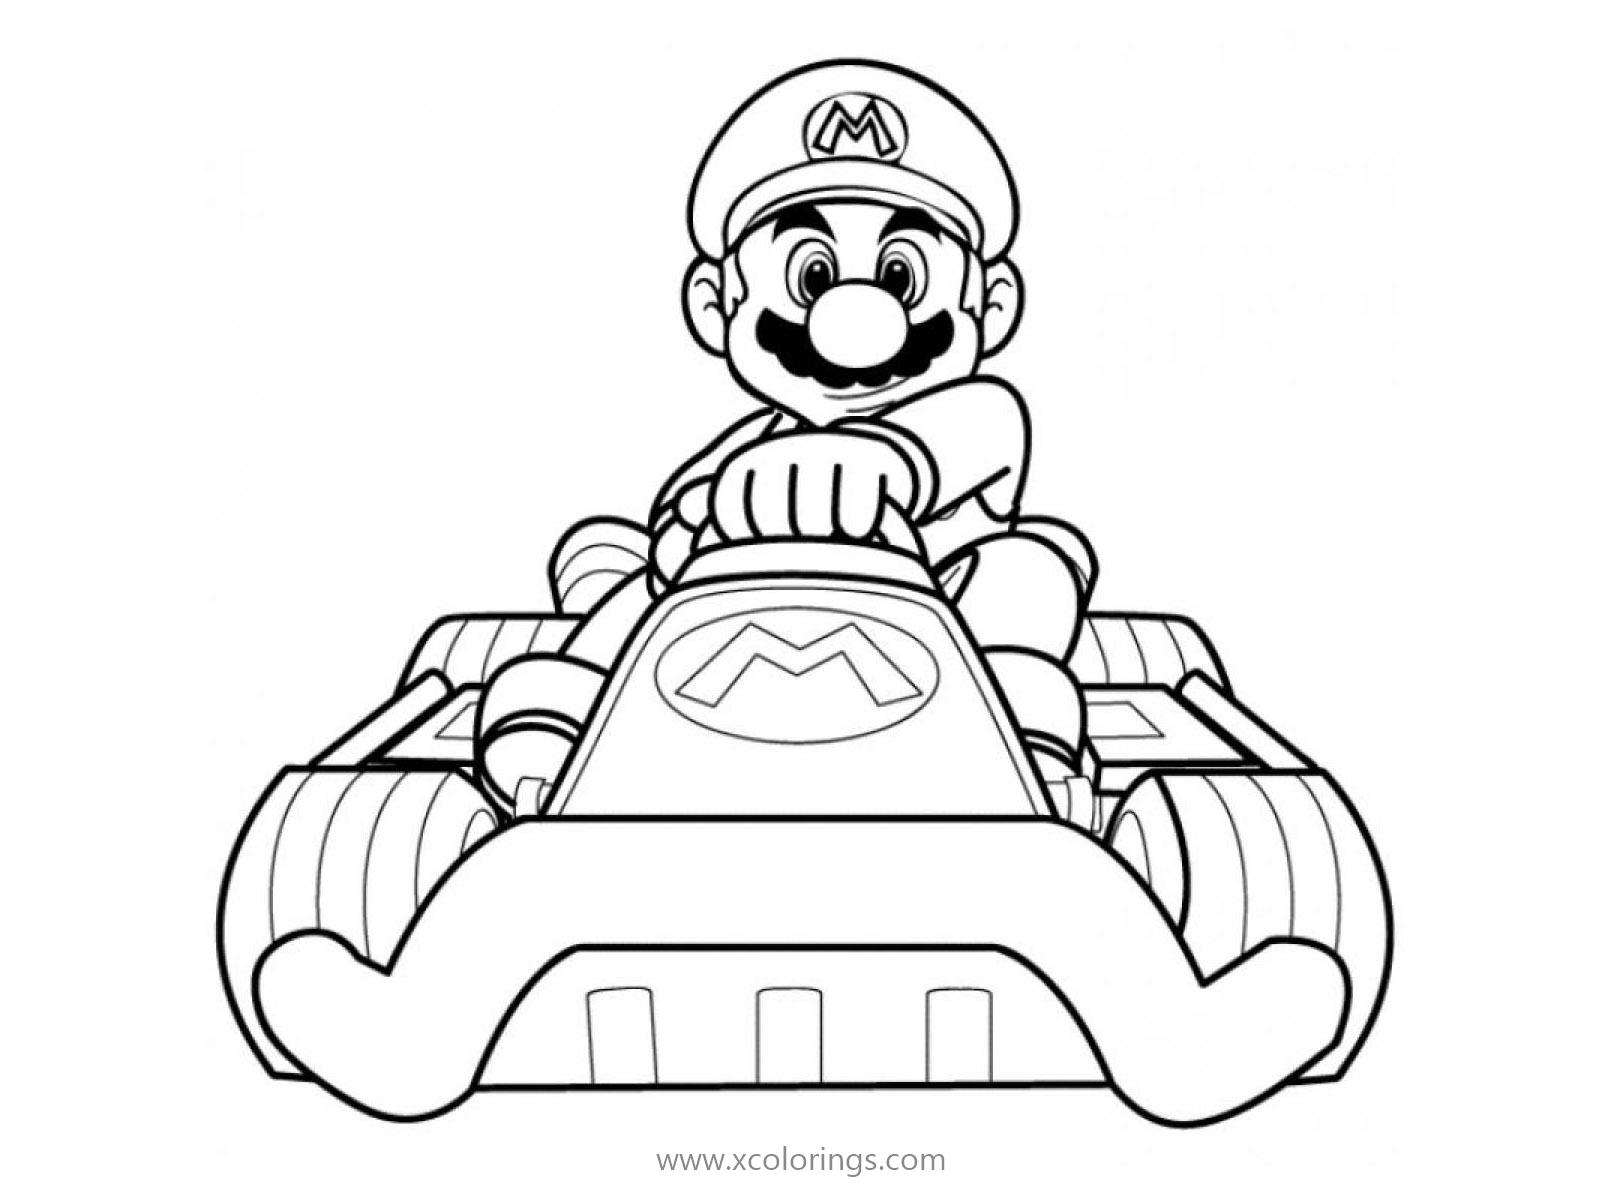 Mario Kart 8 Coloring Pages Xcolorings Com